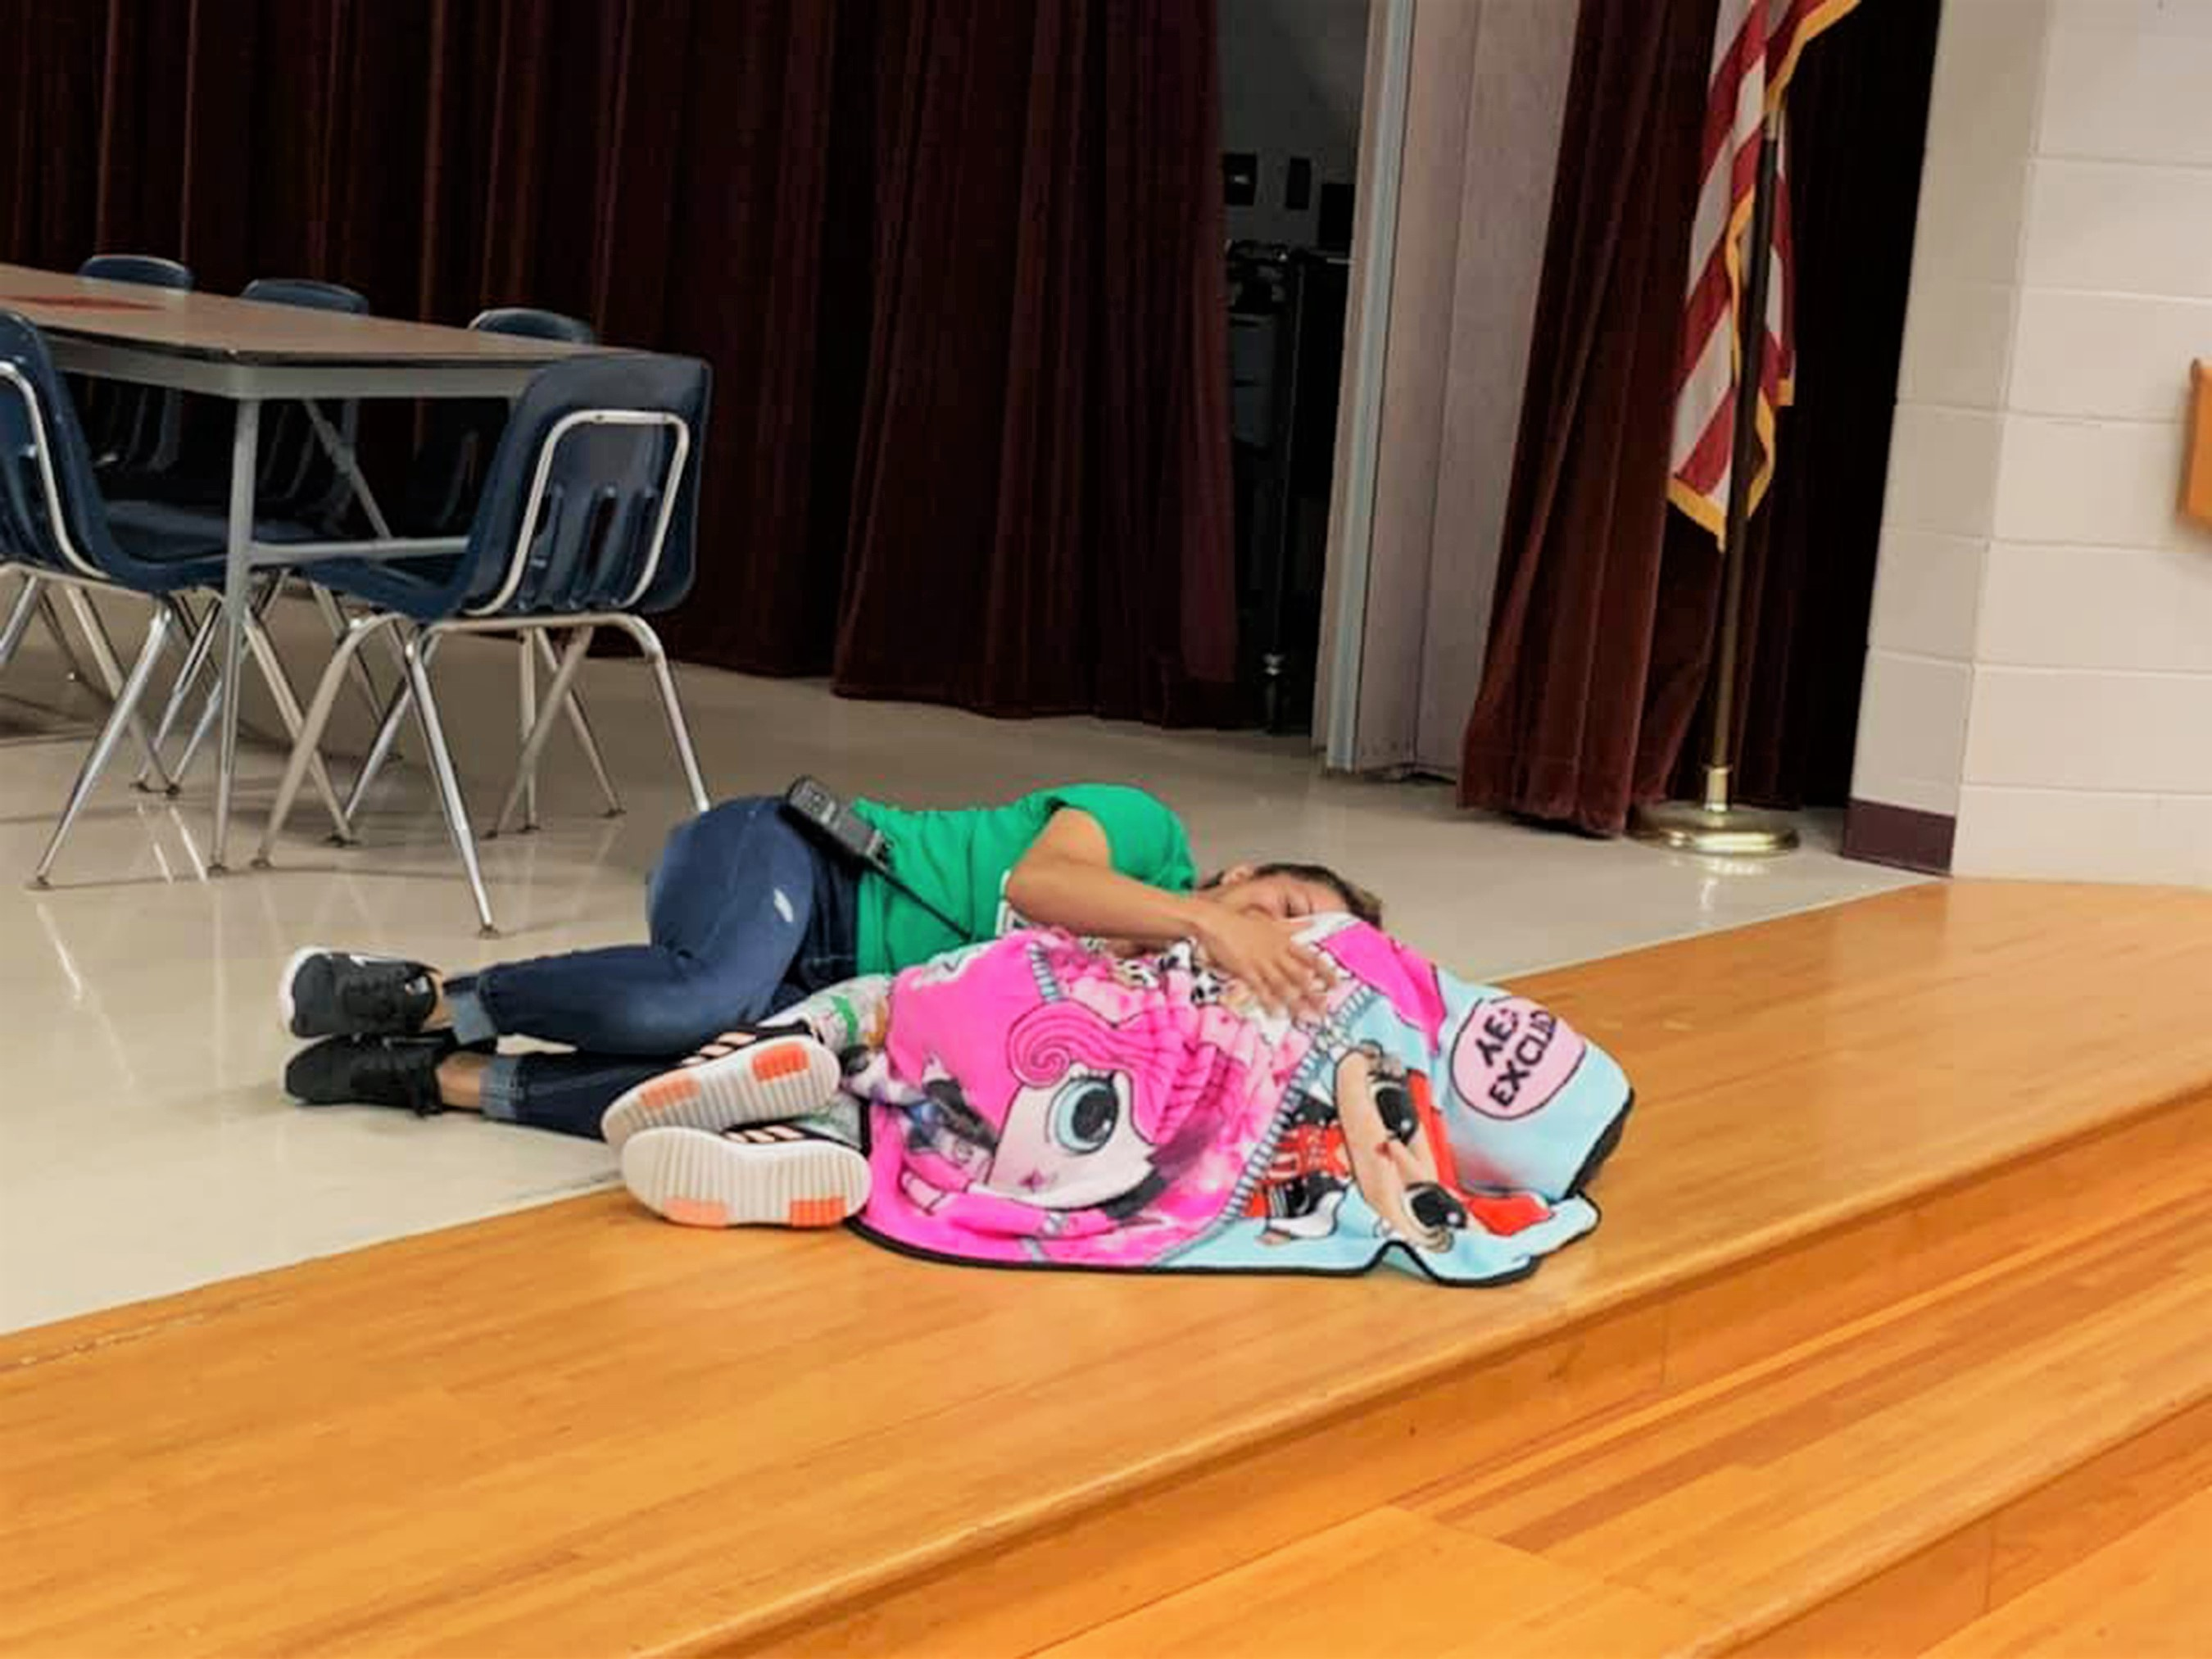 'Angel' Custodian Comforts Upset Student with Autism in Sweet Photo: She's 'Literally the Best'